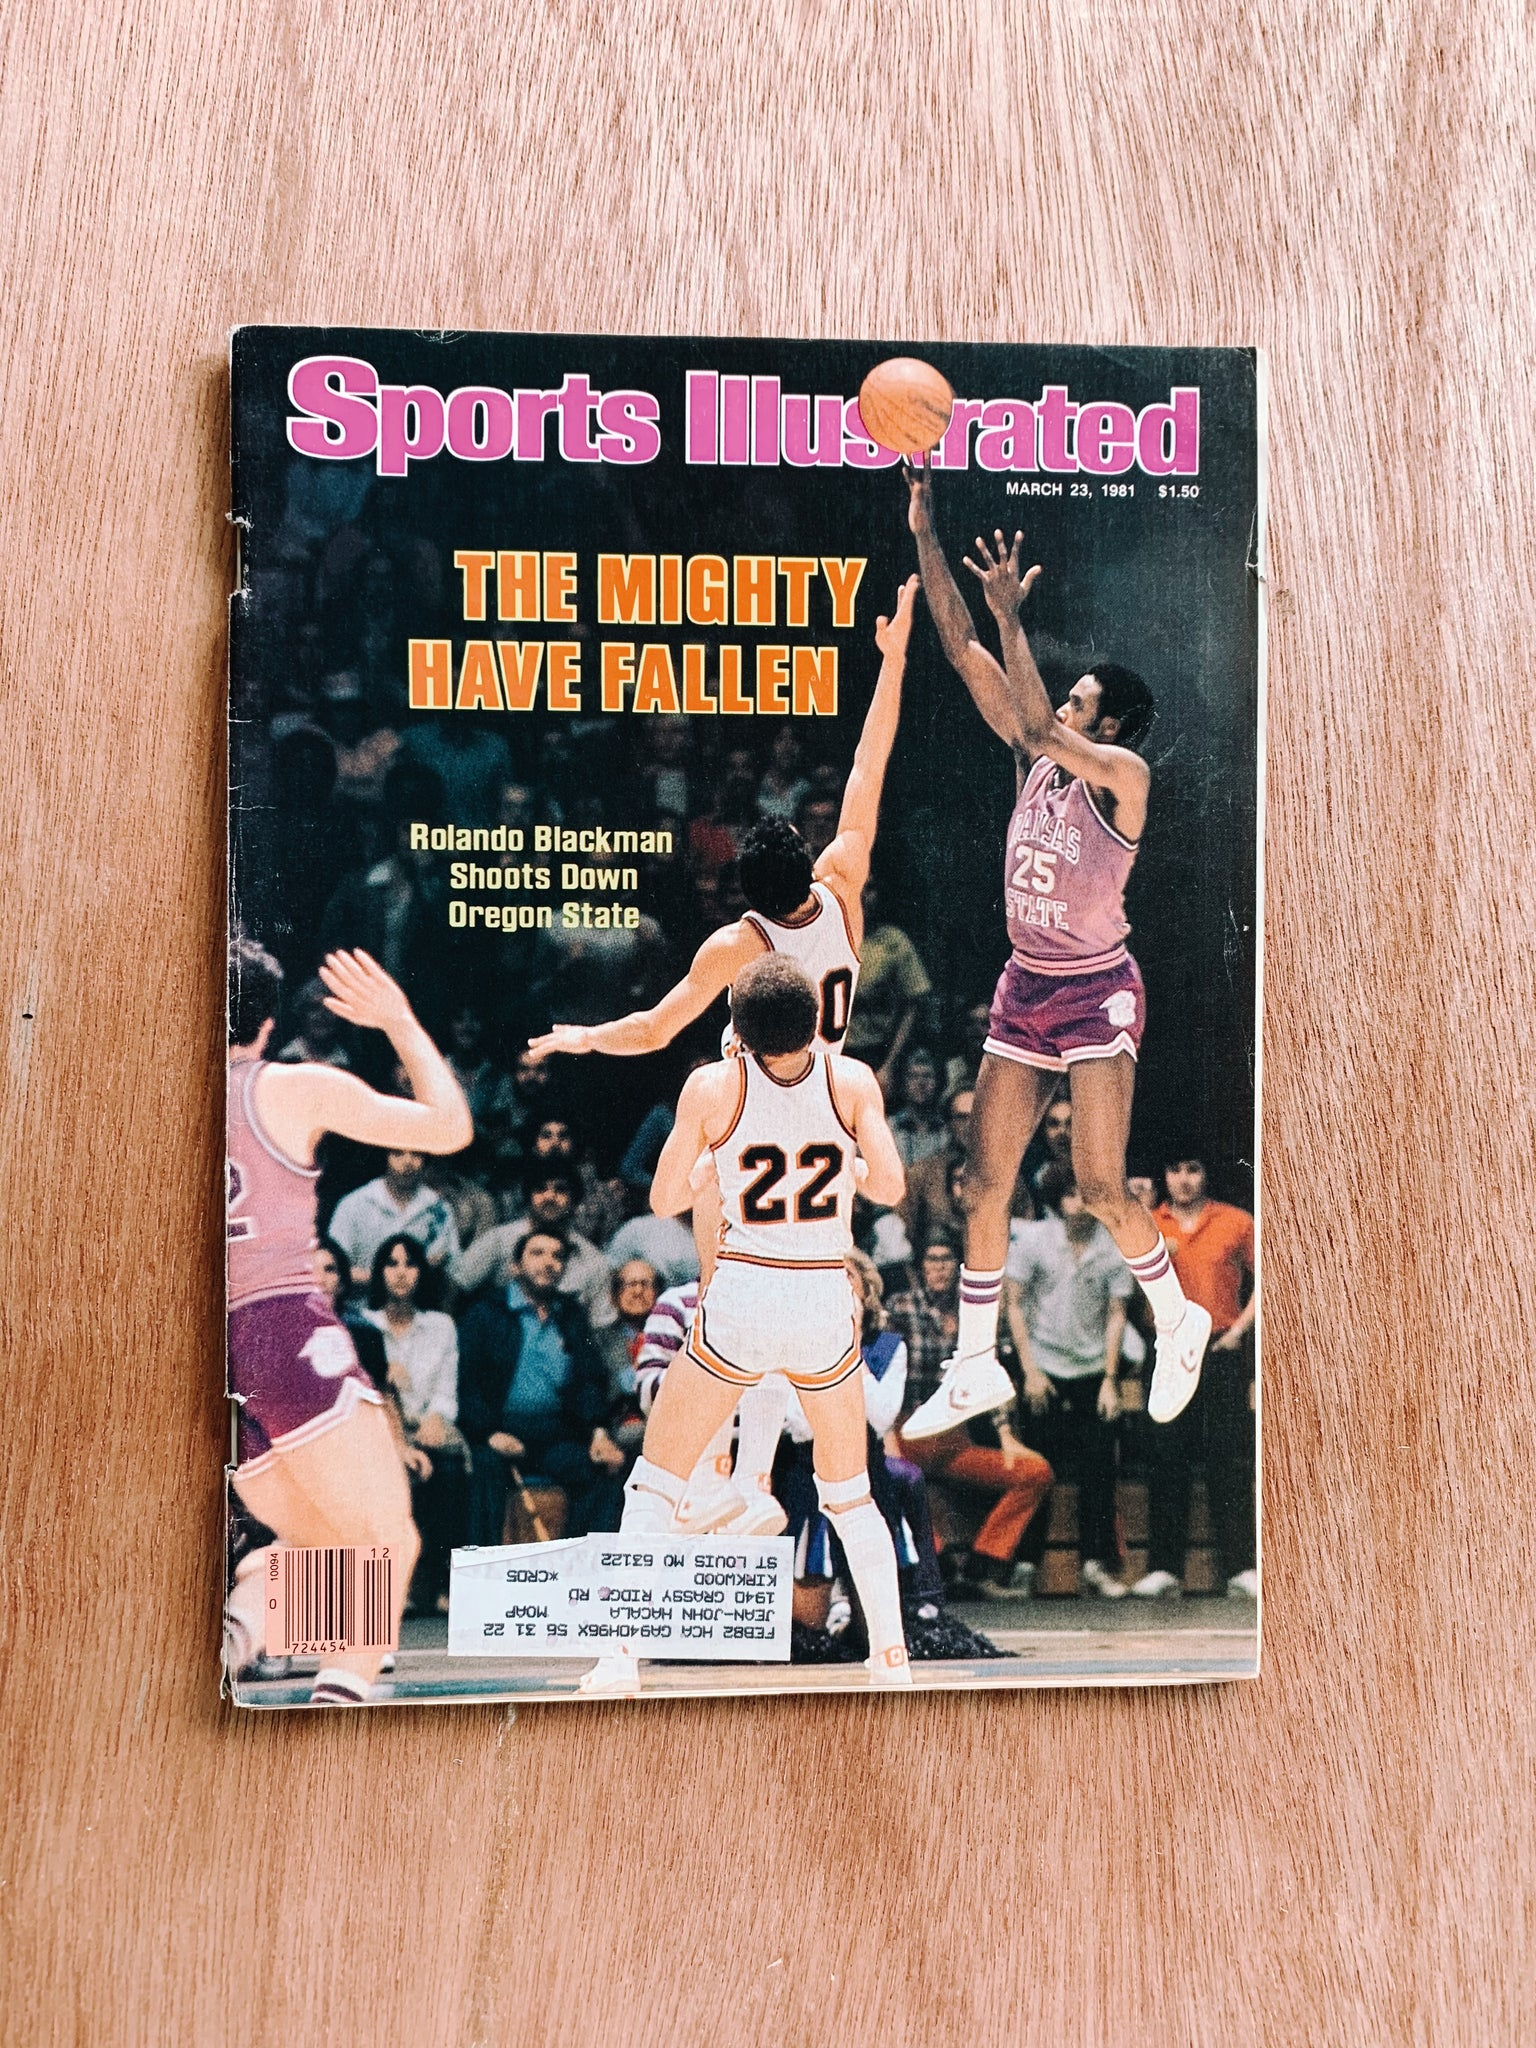 Vintage Sports Illustrated Magazine Issues (Please Select)